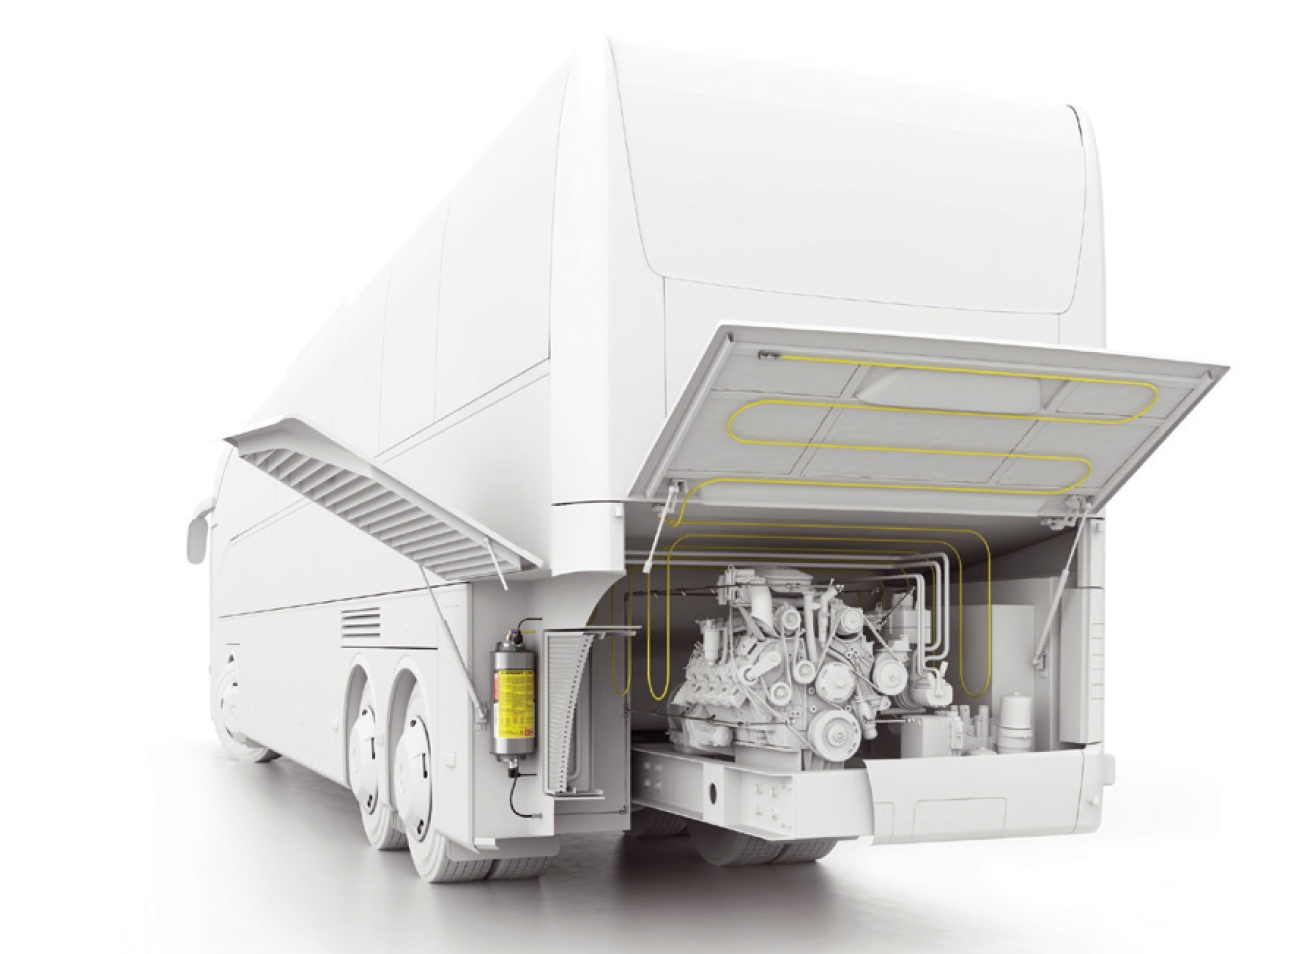 Vehicle Fire Systems : Firedetec engine compartment fire suppression and